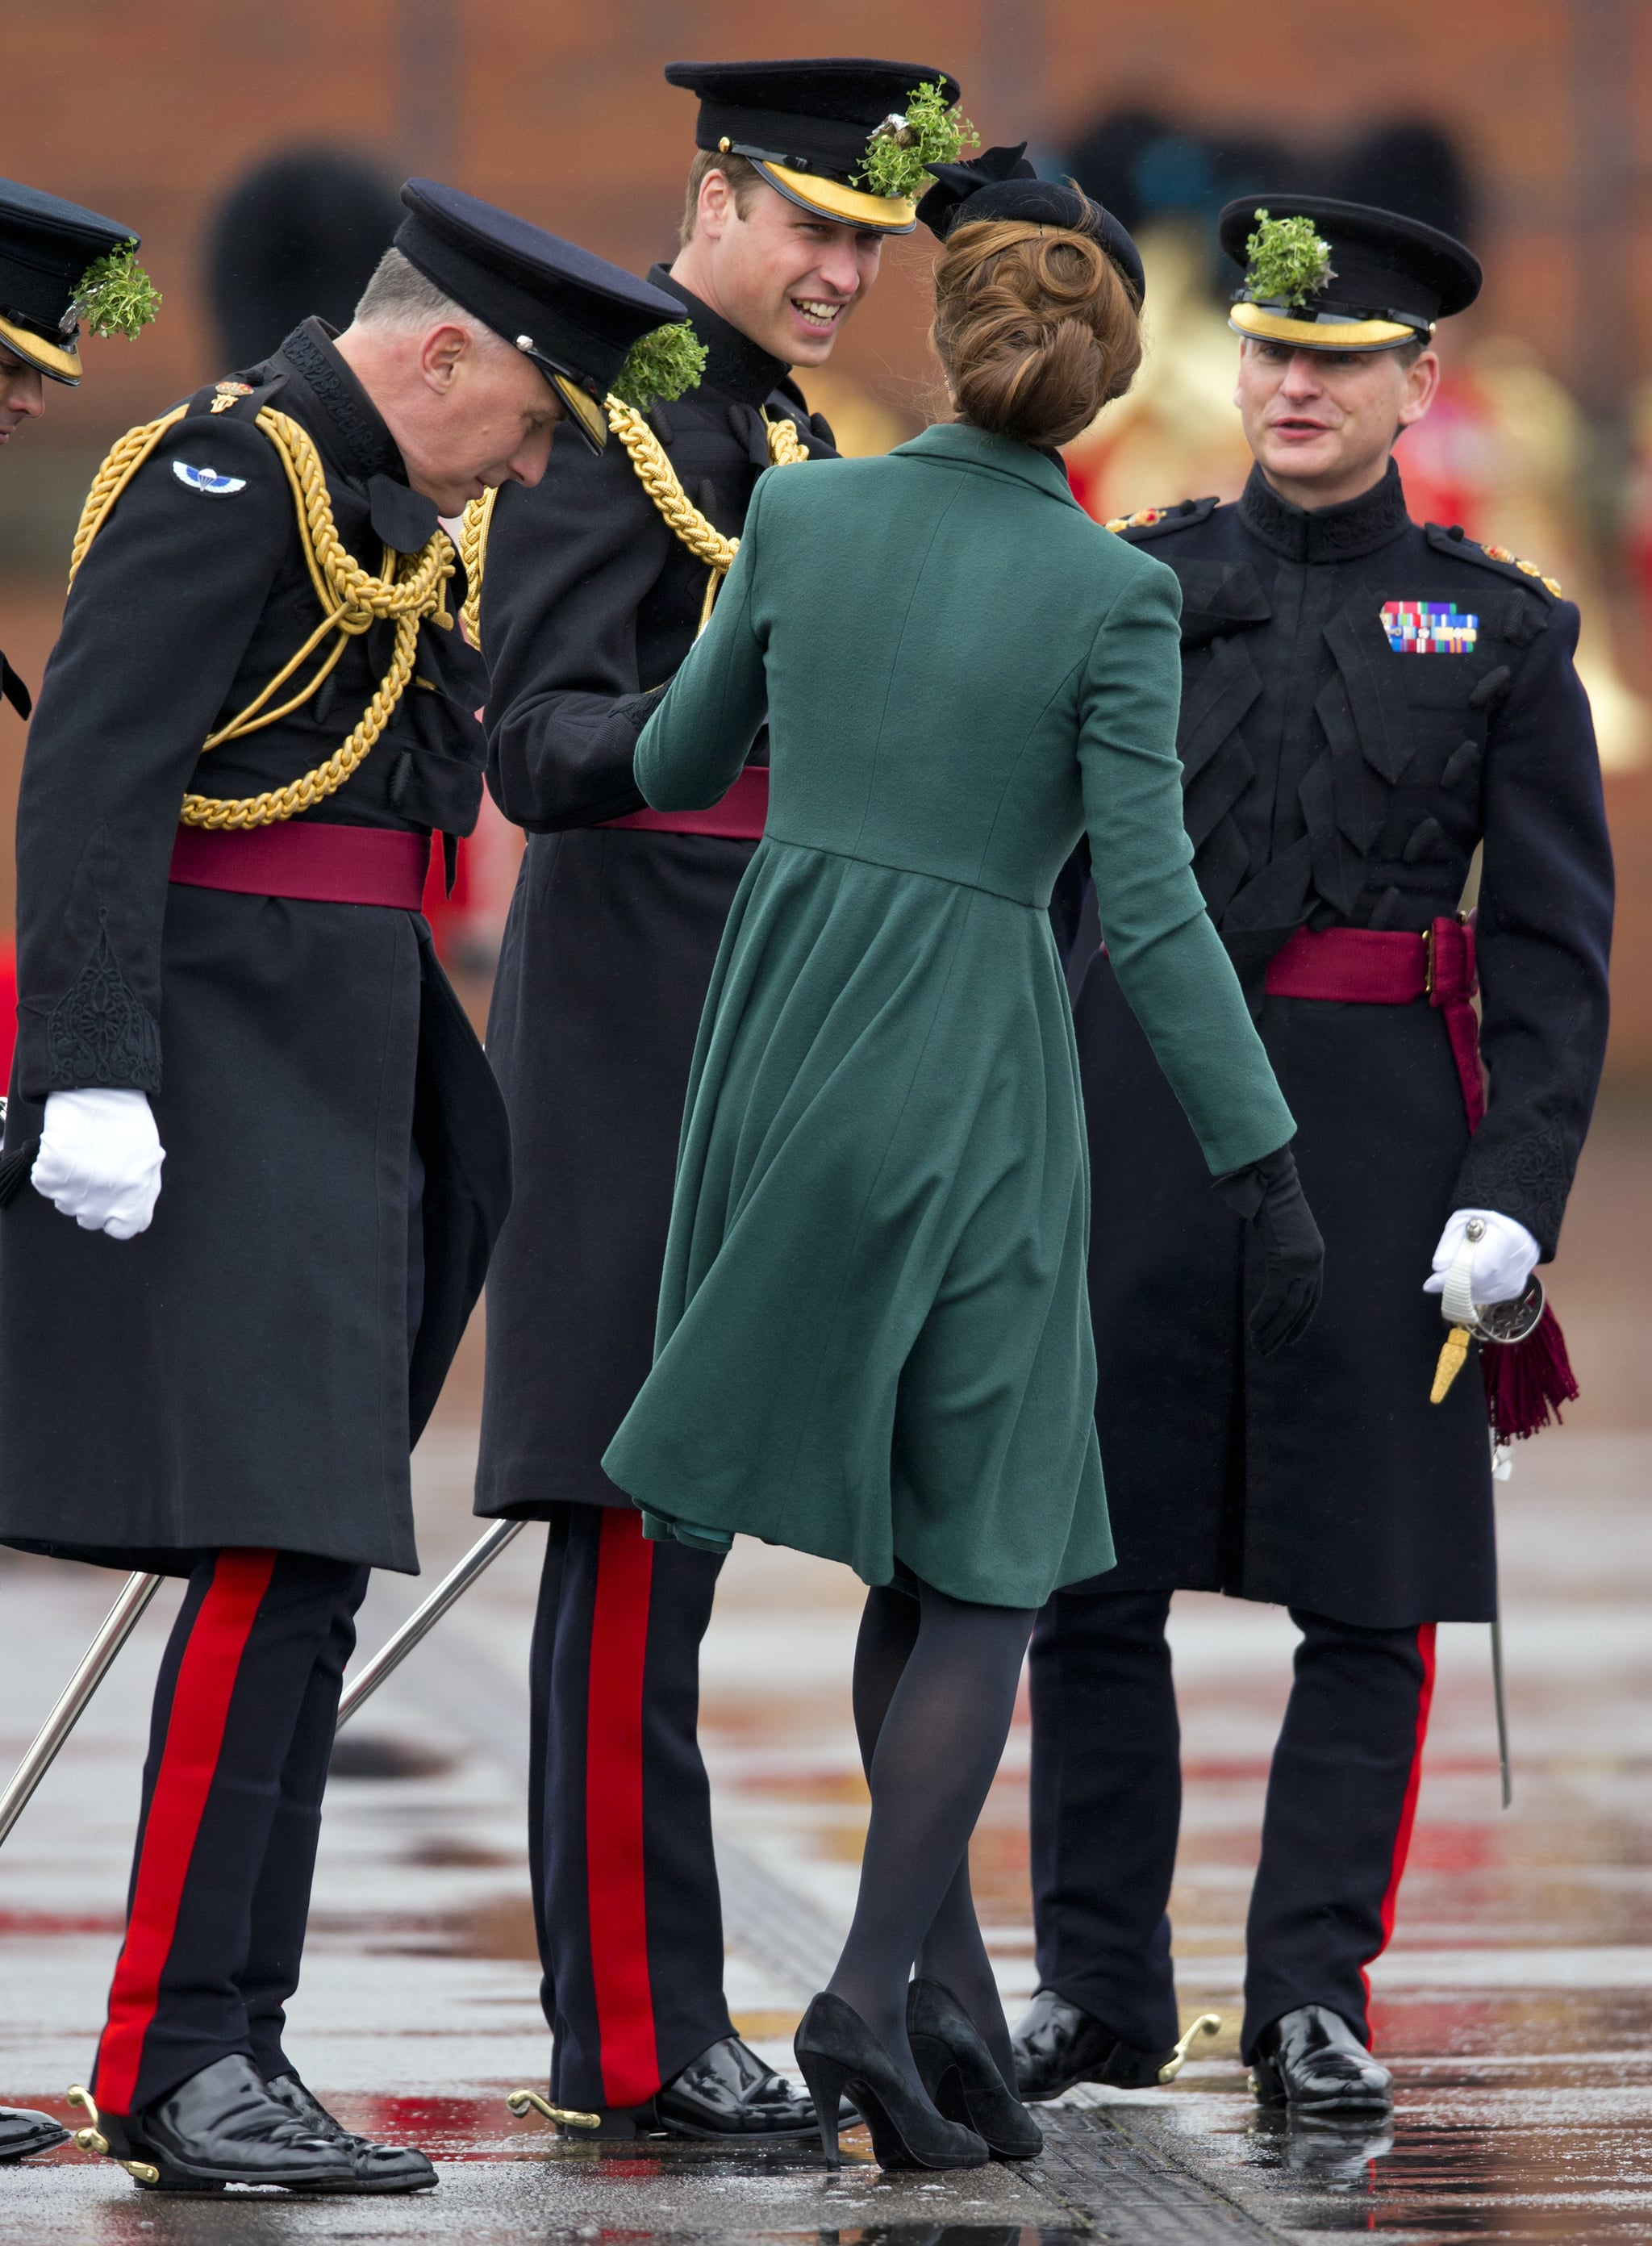 William helped Kate  when her heel got stuck in a grate during a St. Patrick's Day visit to the Iris Guards in Aldershot, England, in March 2013.